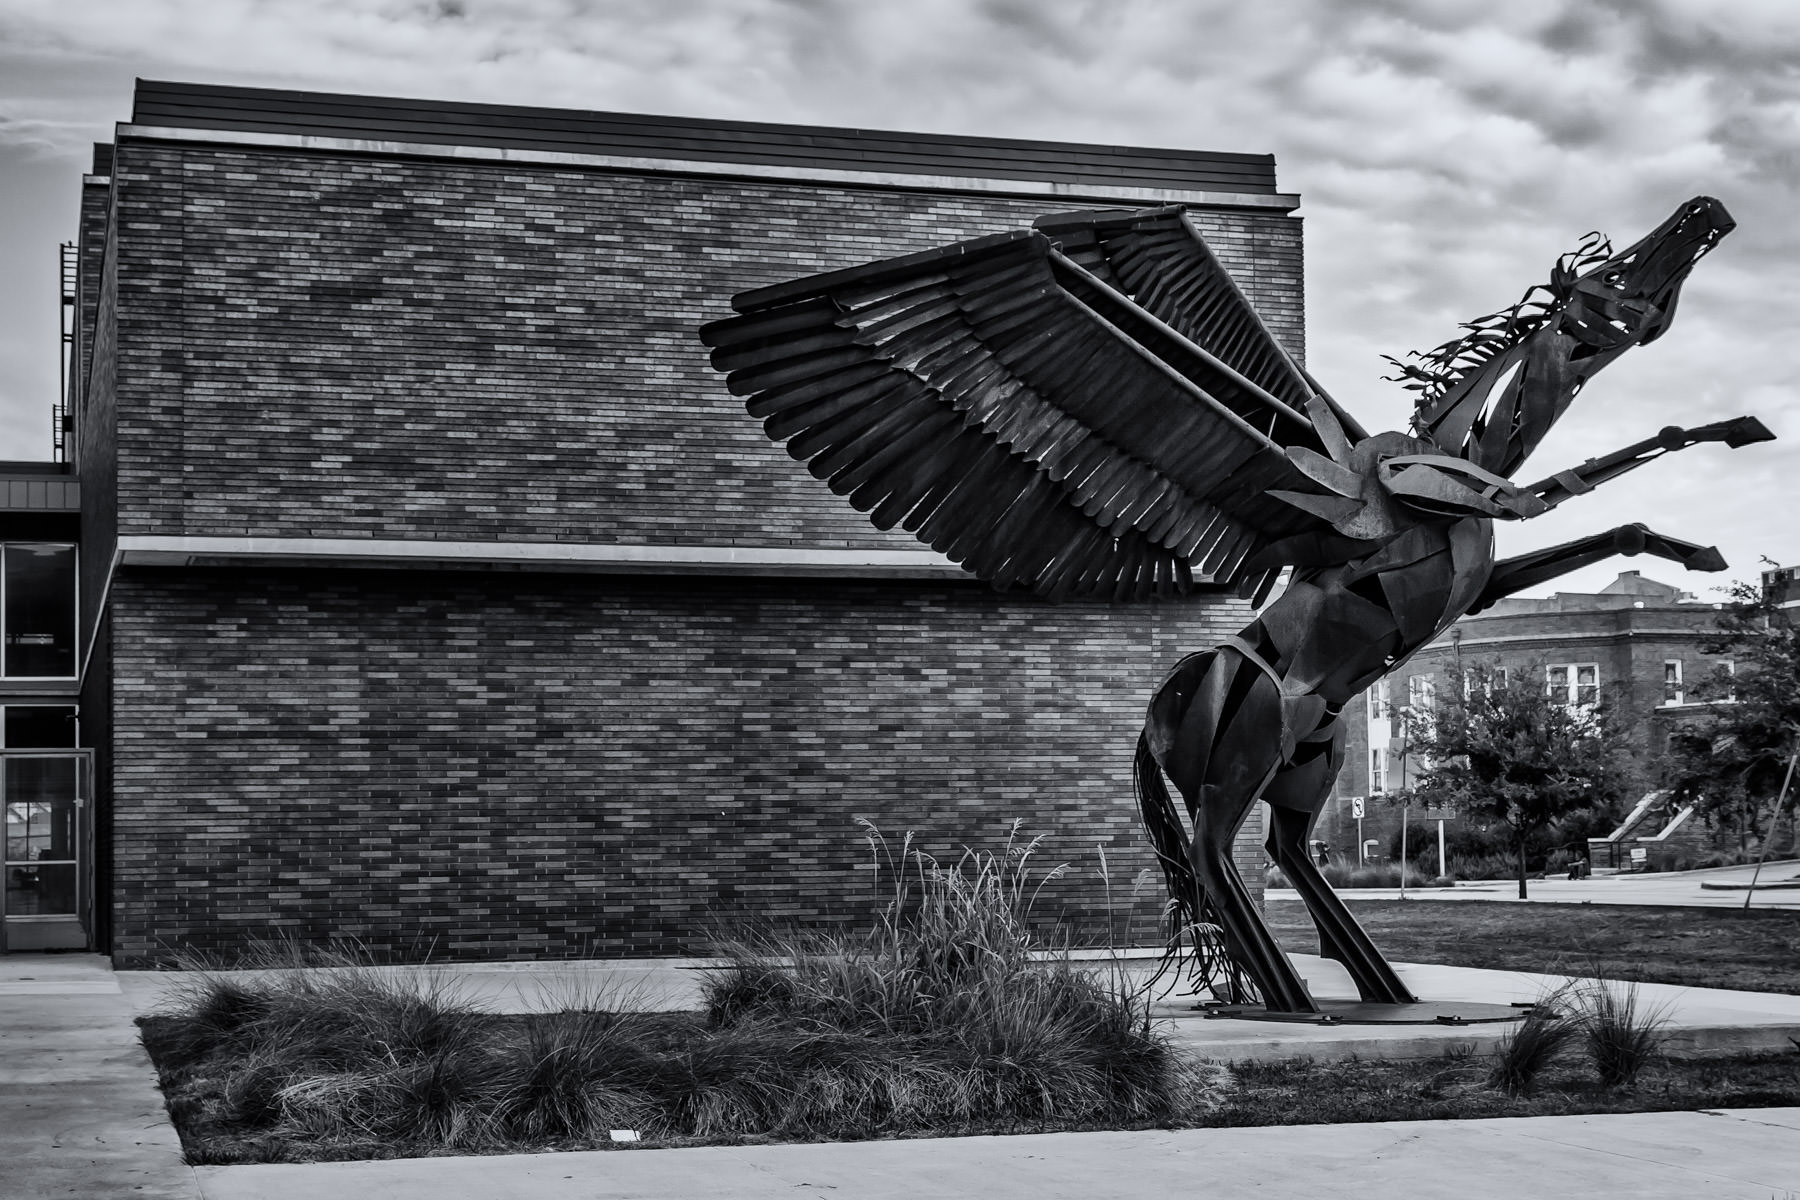 An abstract sculpture of Pegasus outside of the Dallas Arts District's Booker T. Washington High School for the Performing and Visual Arts.